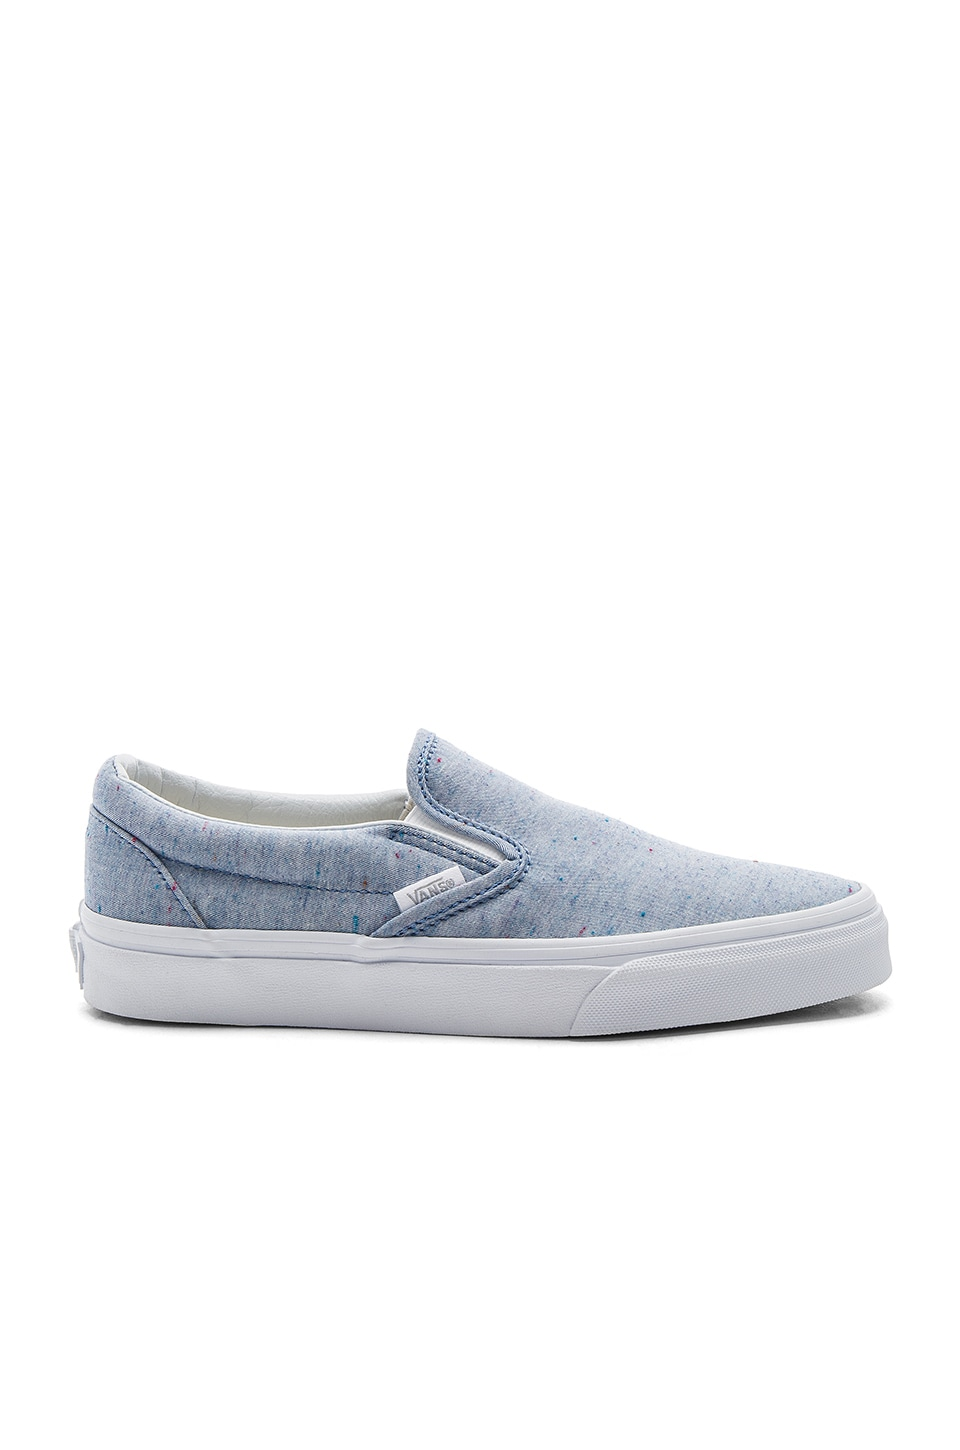 Vans Classic Slip-On Sneaker in Blue & True White